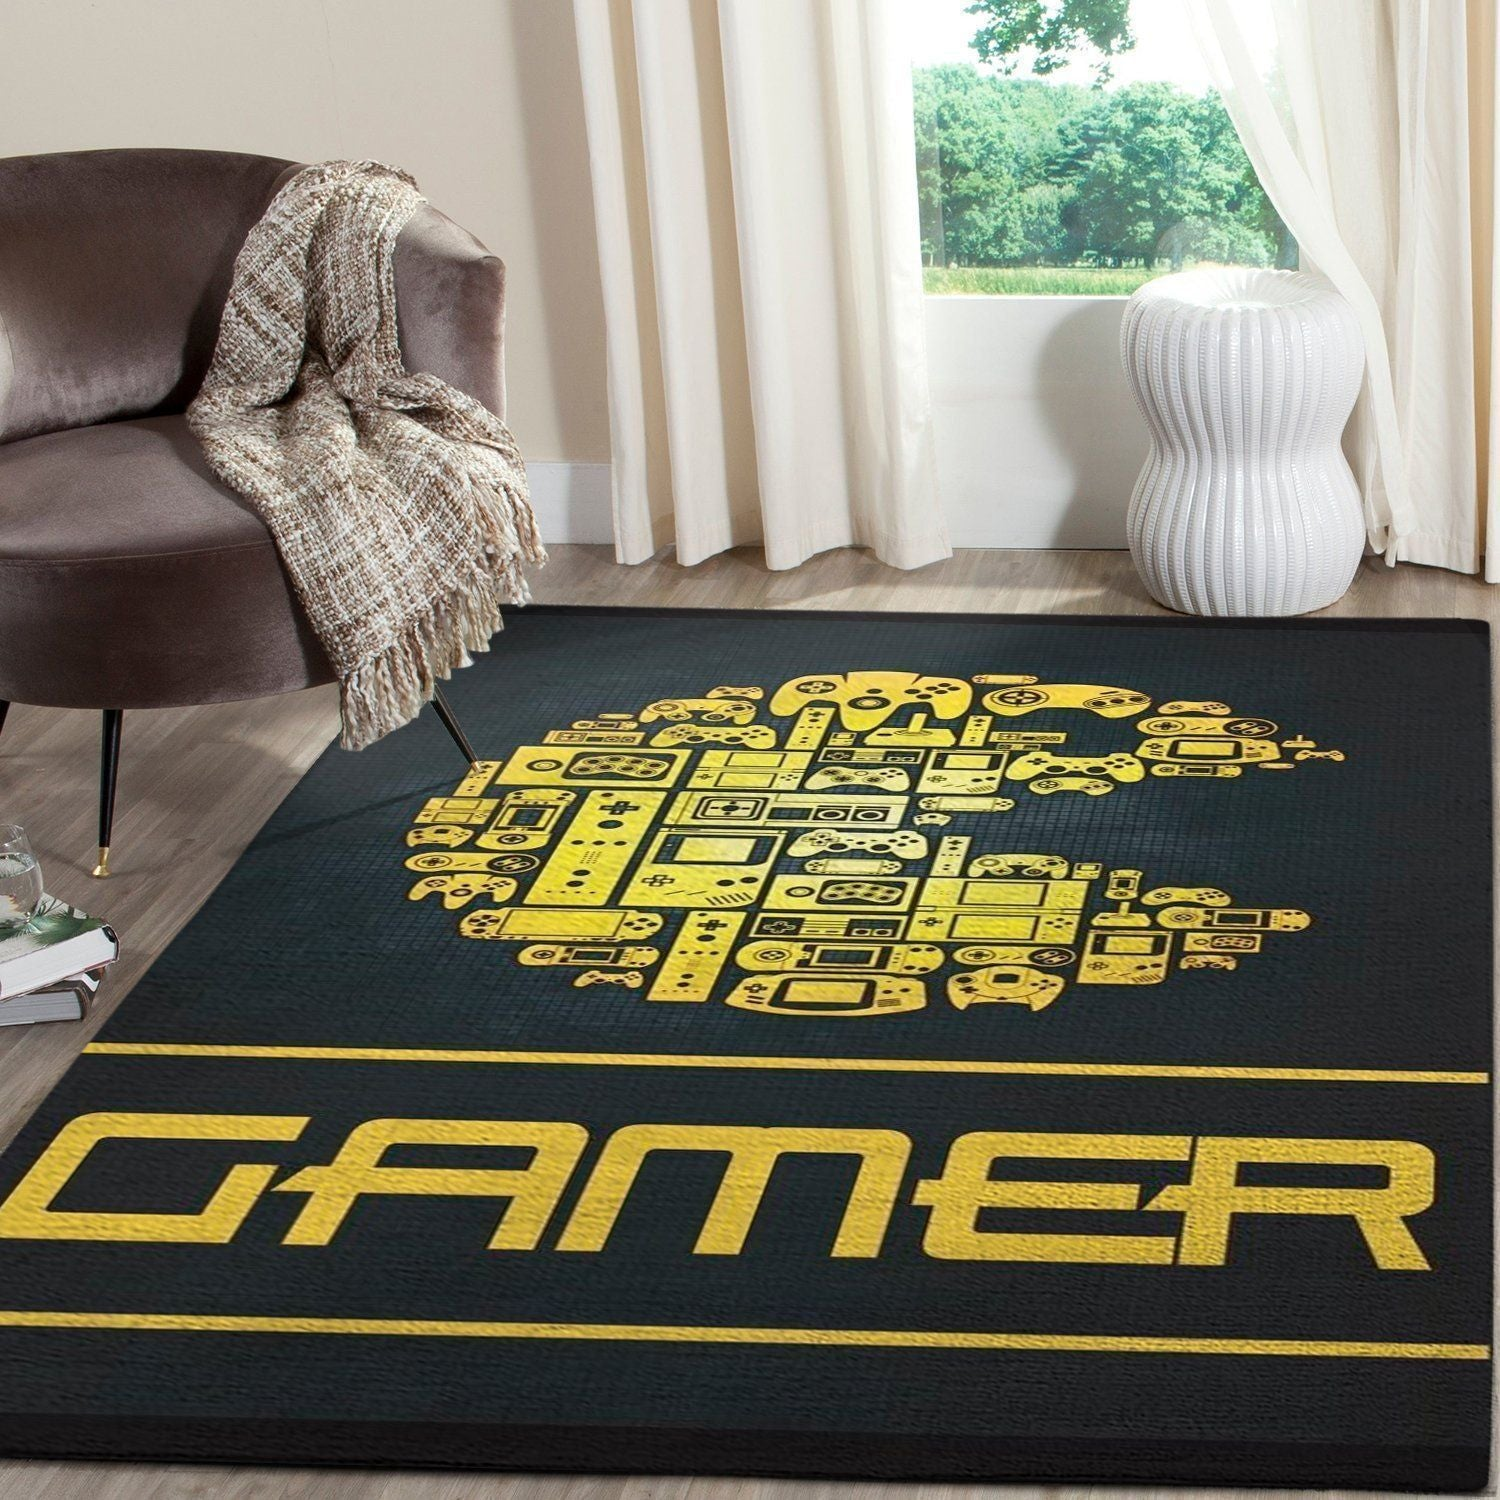 Pacman Area Rug Video Game Carpet, Gamer Living Room Rugs, Floor Decor 101113